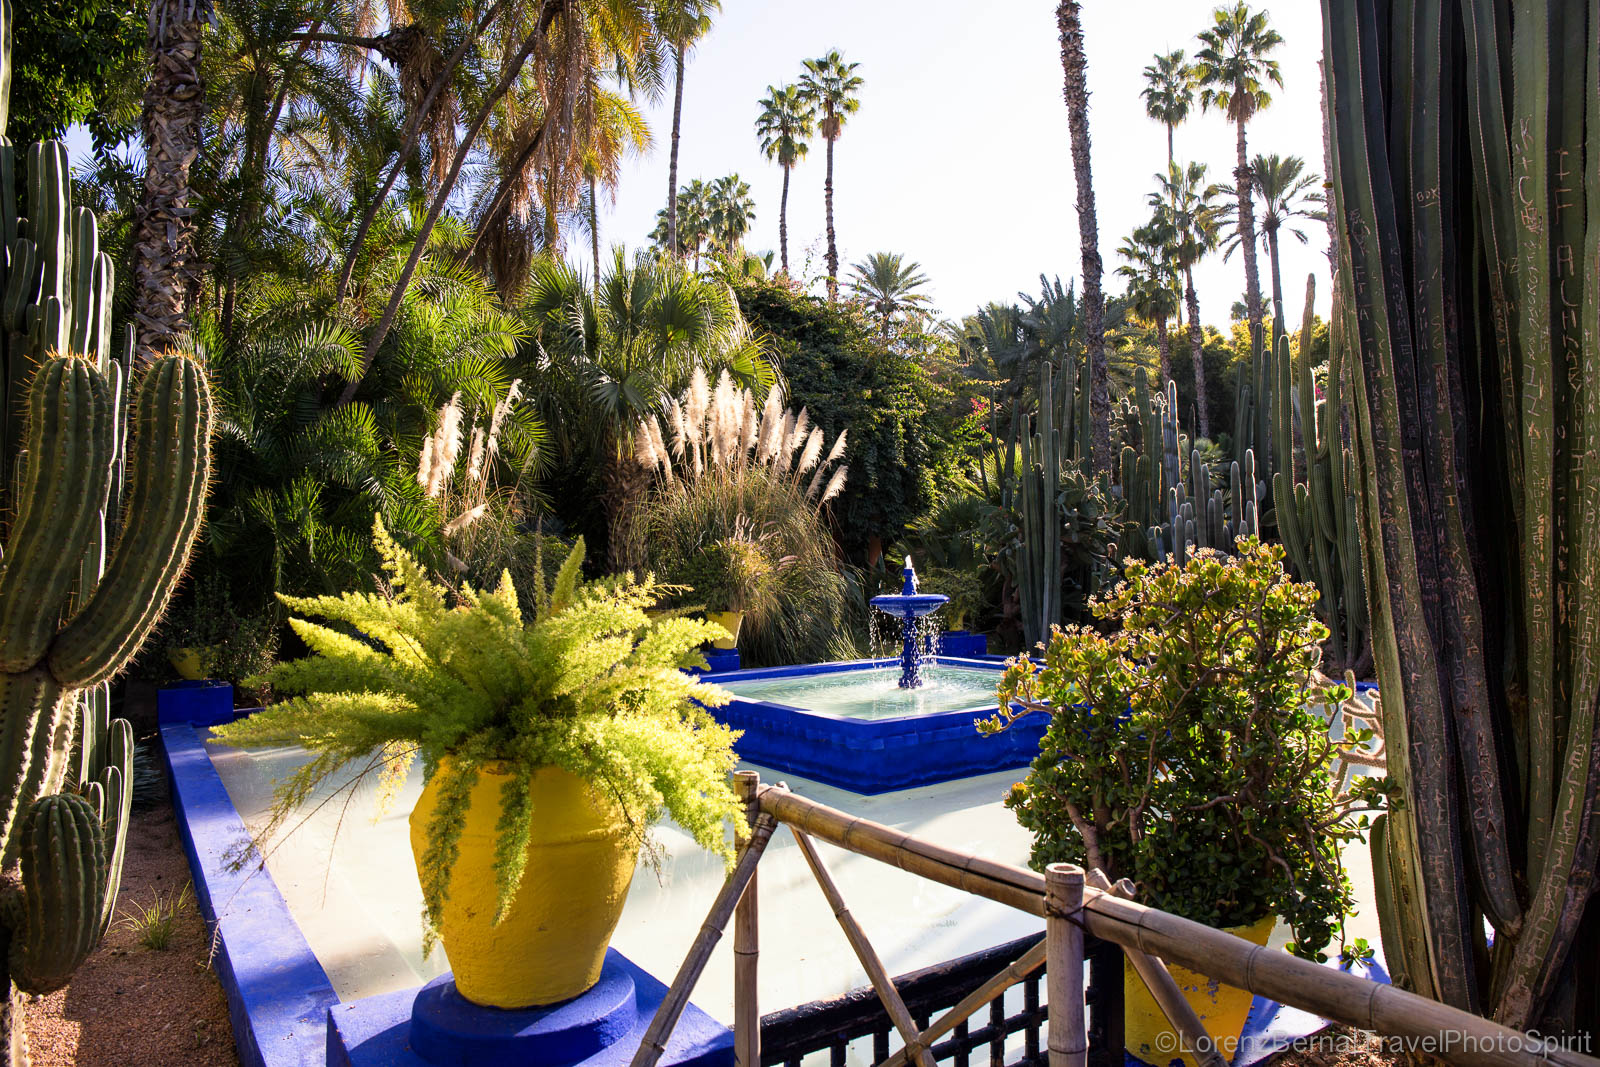 Around the fountain of the Majorelle gardens in Marrakech.